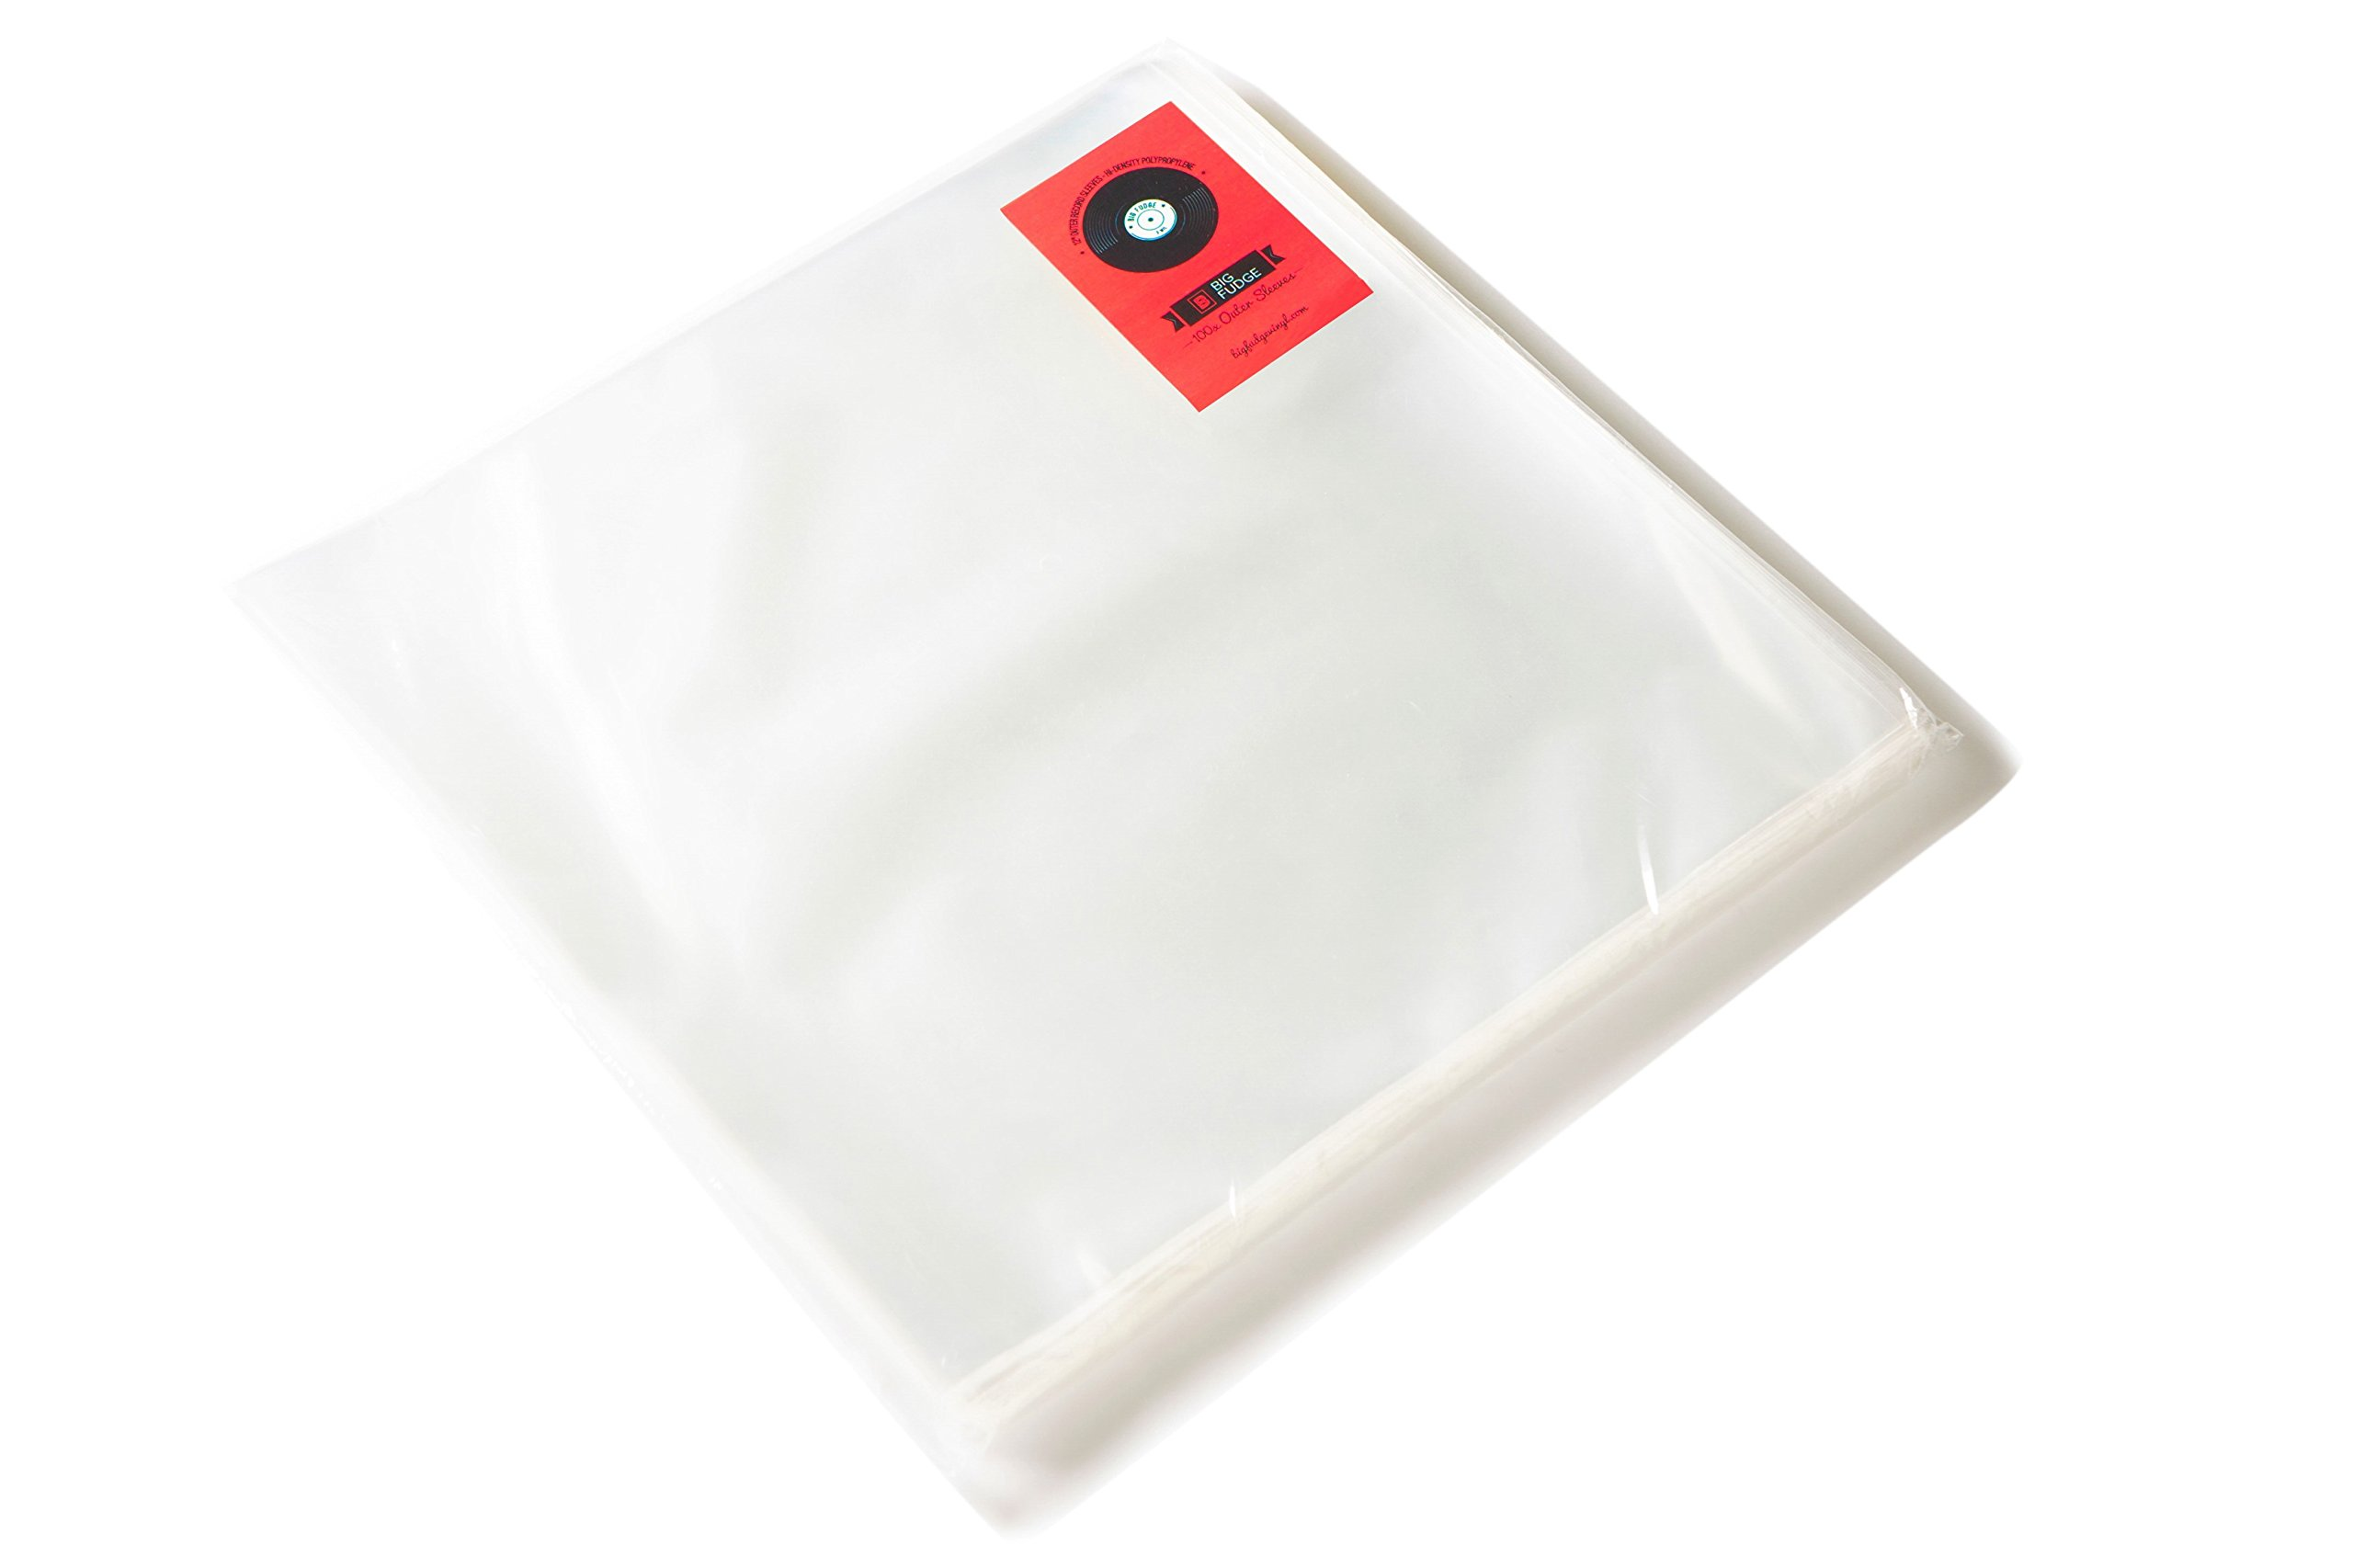 100x Vinyl Record Outer Sleeves, 12'' LP - Crystal Clear, Not Cloudy, No Wrinkles! The Best Protection for Your Collection!